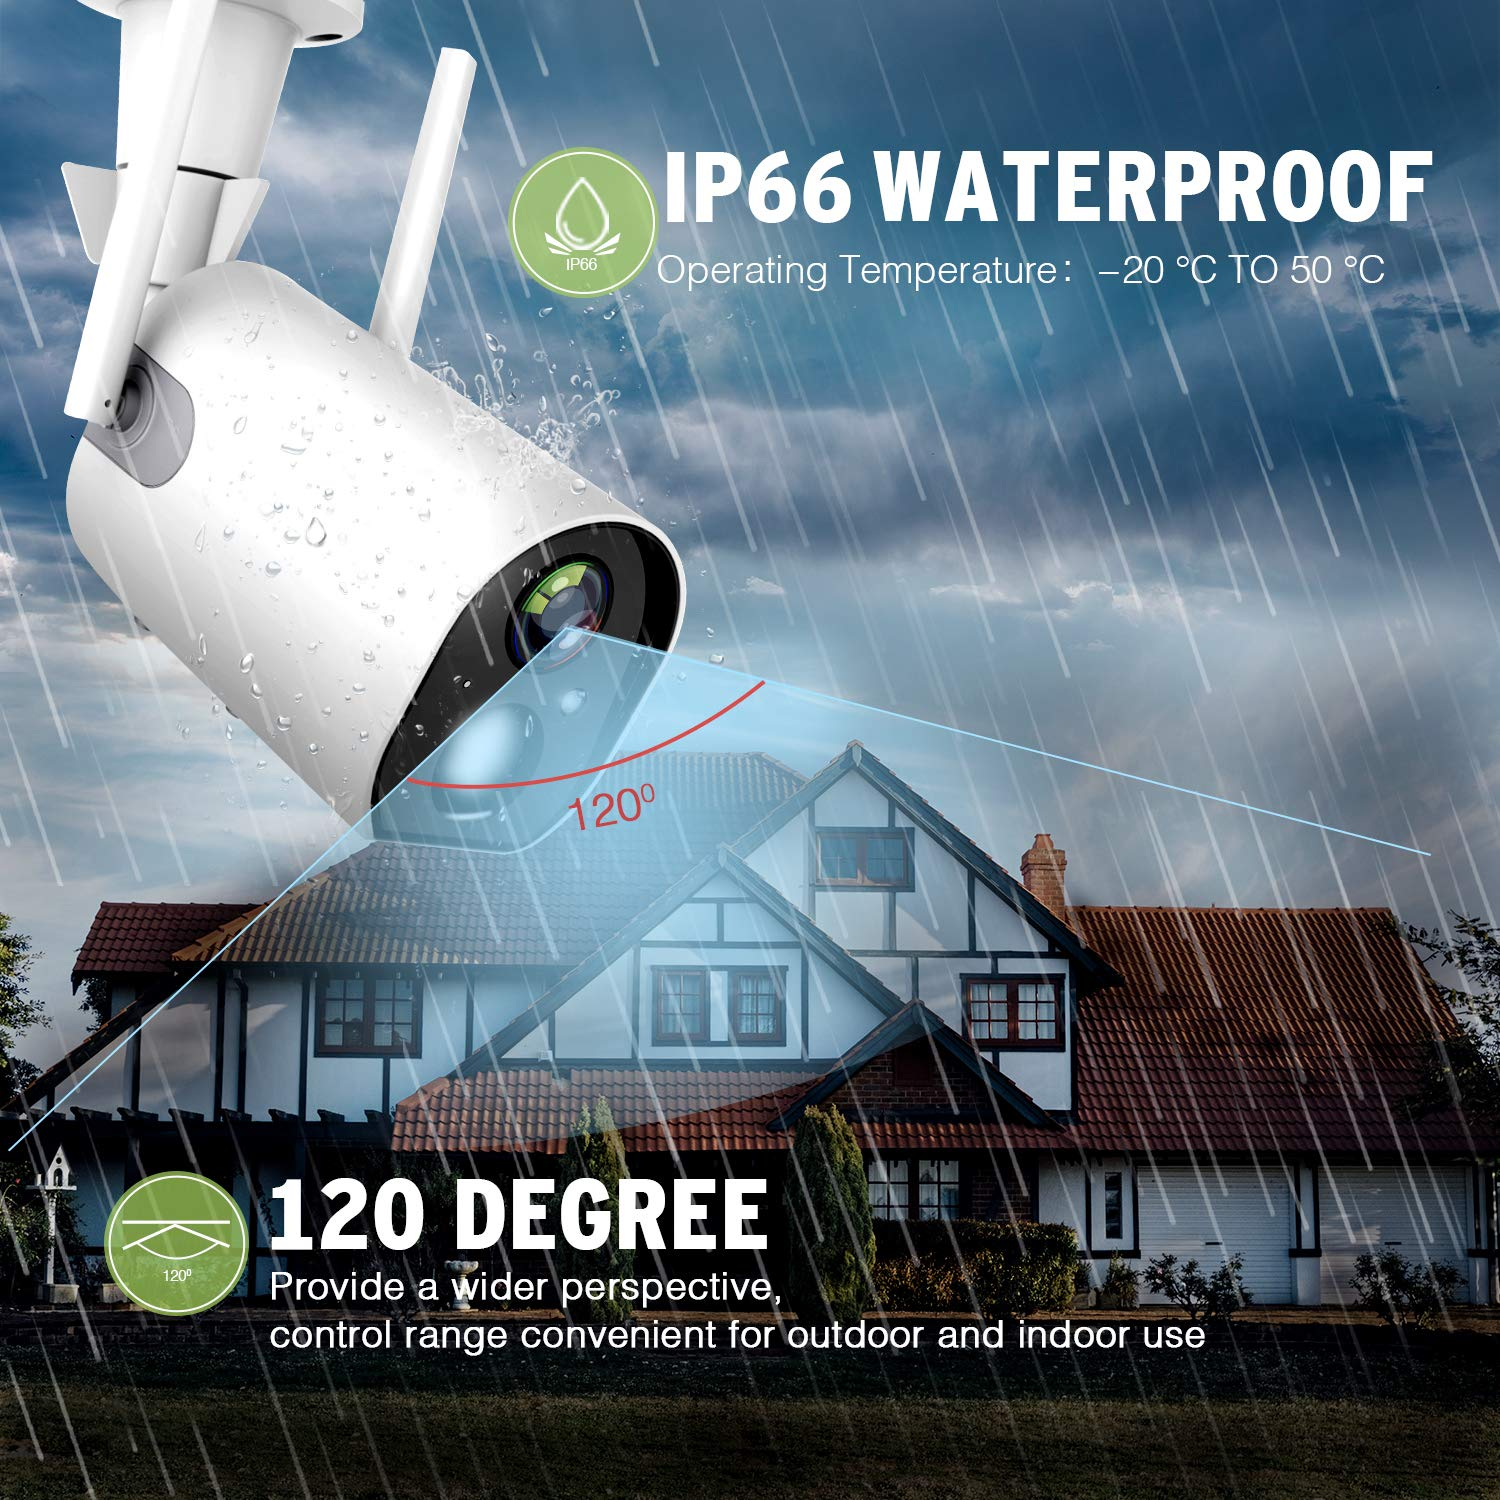 Outdoor Camera Wireless, Rechargeable Security Camera, Motion Detection, 2-Way Audio, Night Vision, IP66 Waterproof, with 10400mAh Battery, 4DB Wireless Antenna, Indoor/Outdoor 1080P WiFi Camera